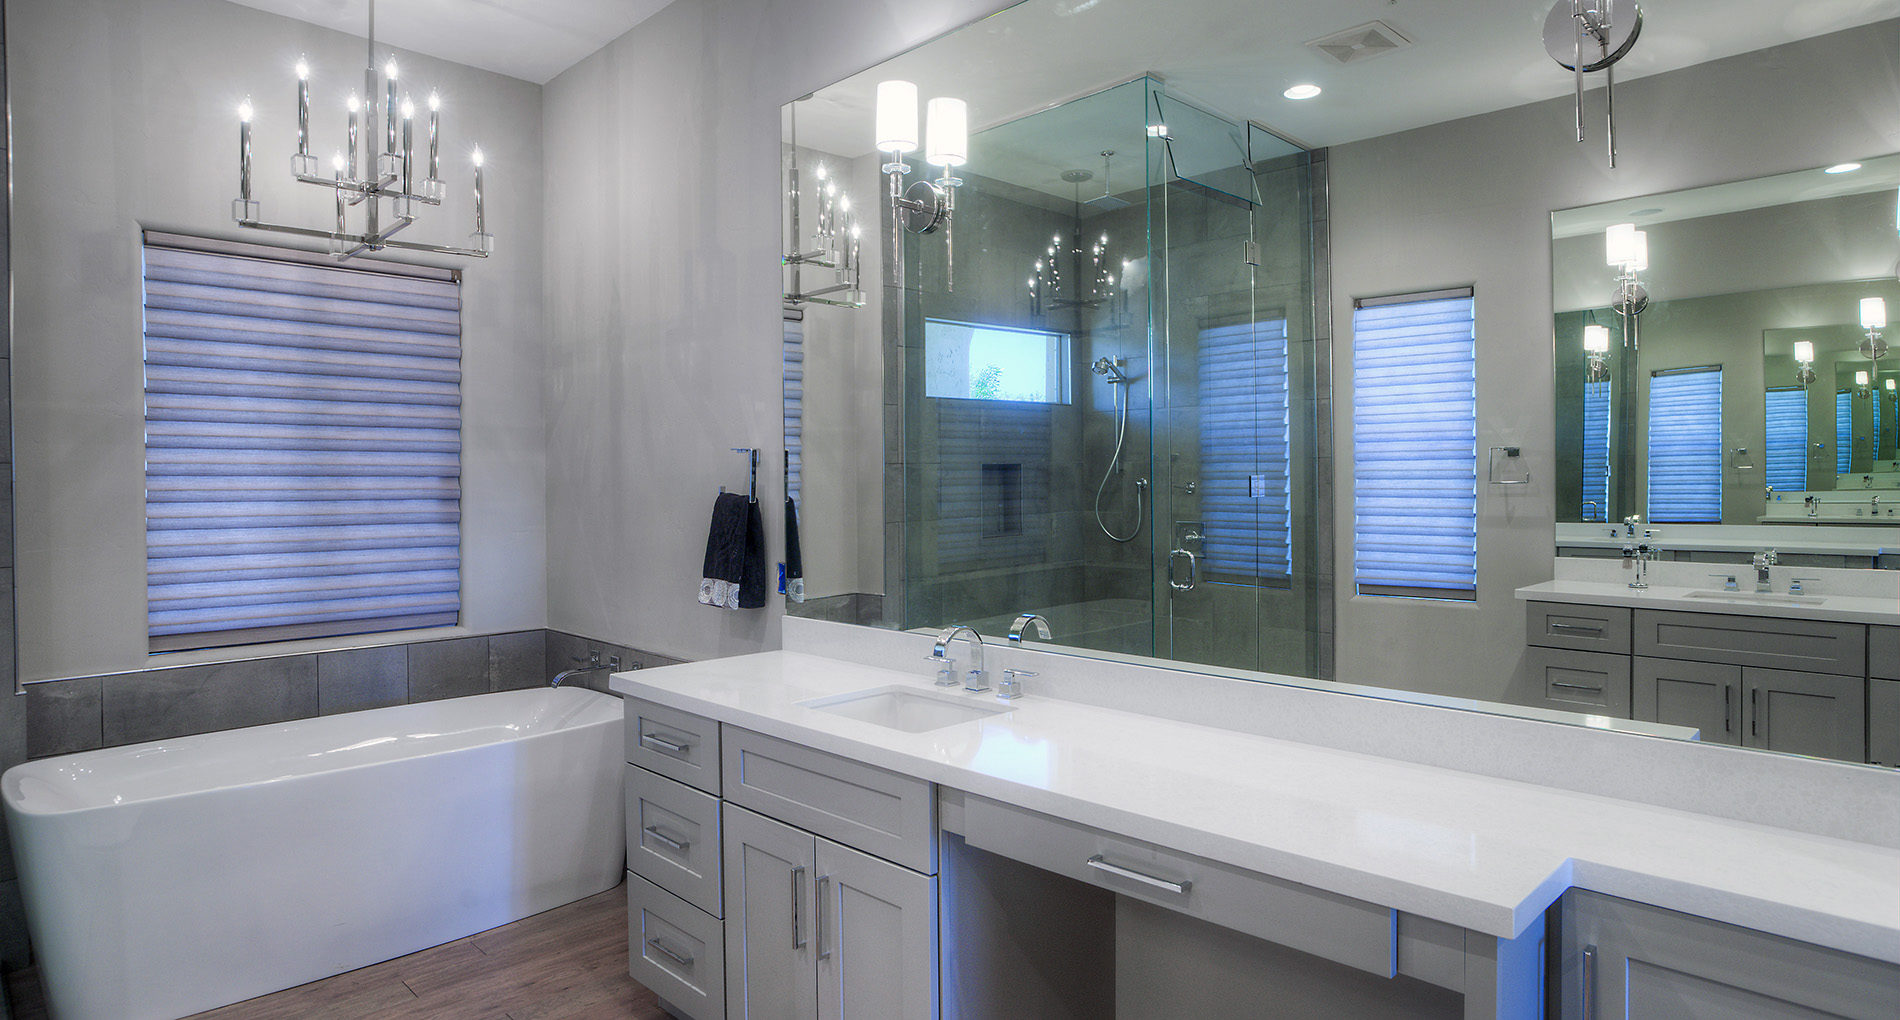 Bathroom Remodel Scottsdale Mariposagrande Slider